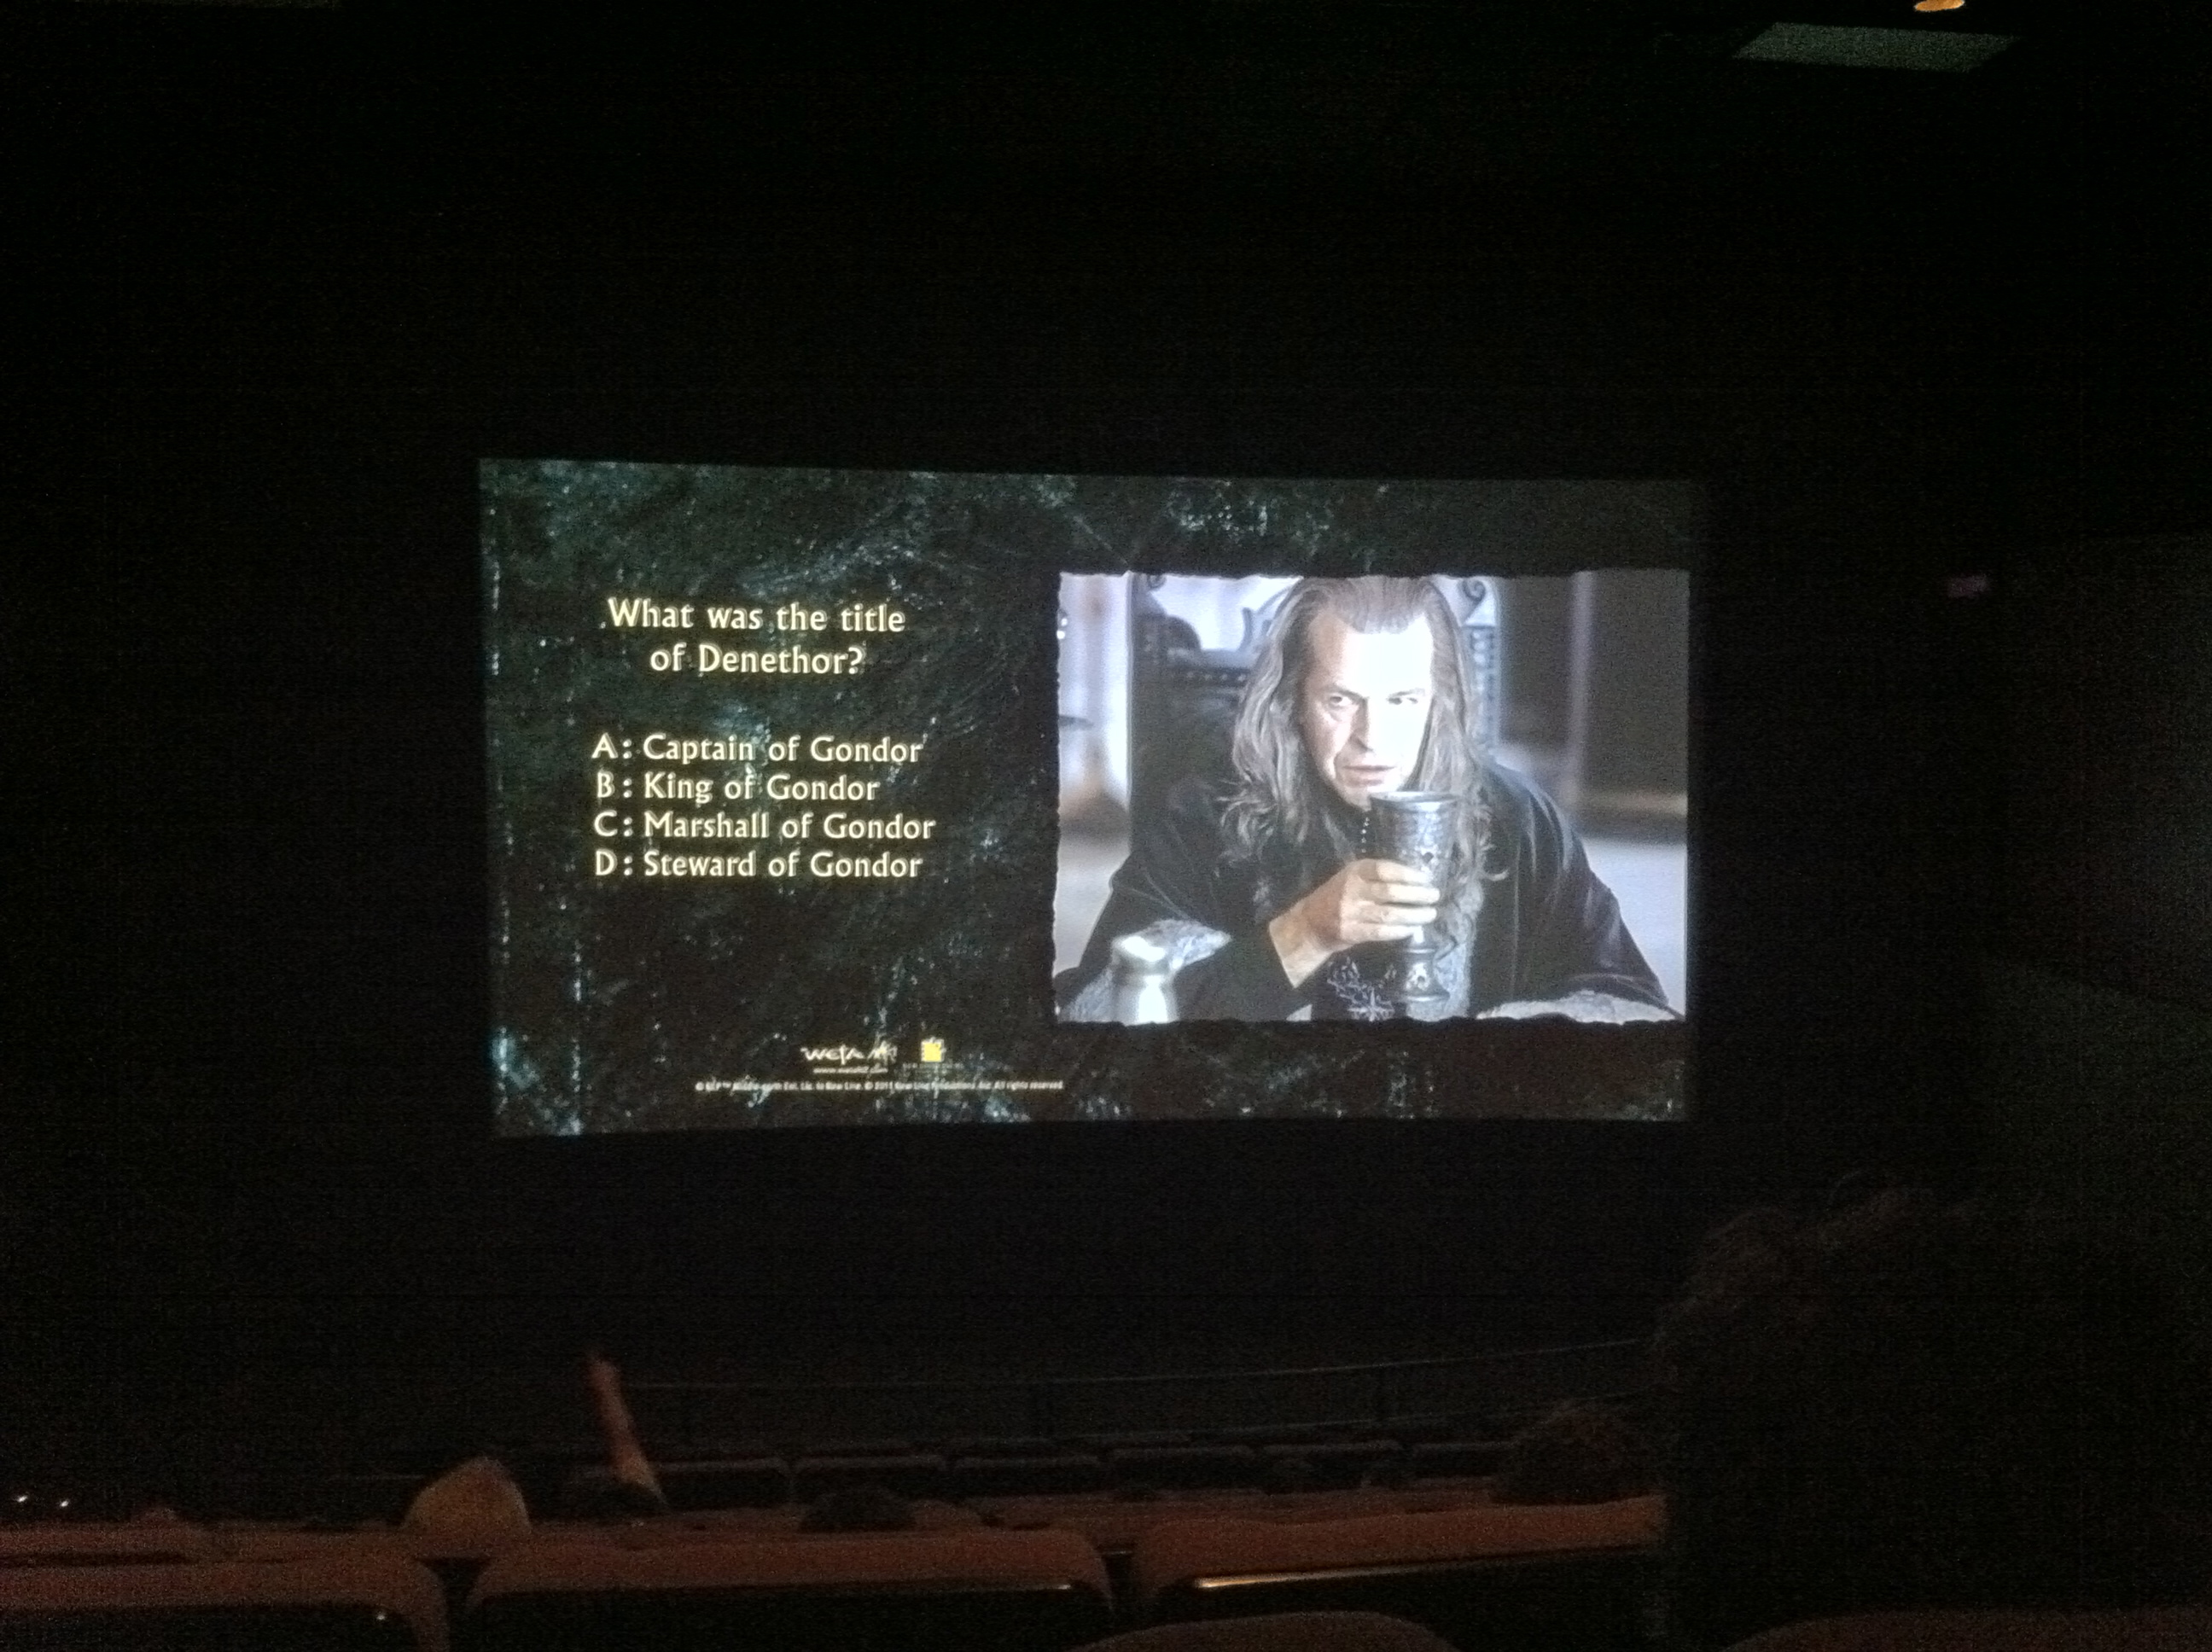 Although updated daily, all theaters, movie show times, and movie listings should be independently verified with the movie theater.